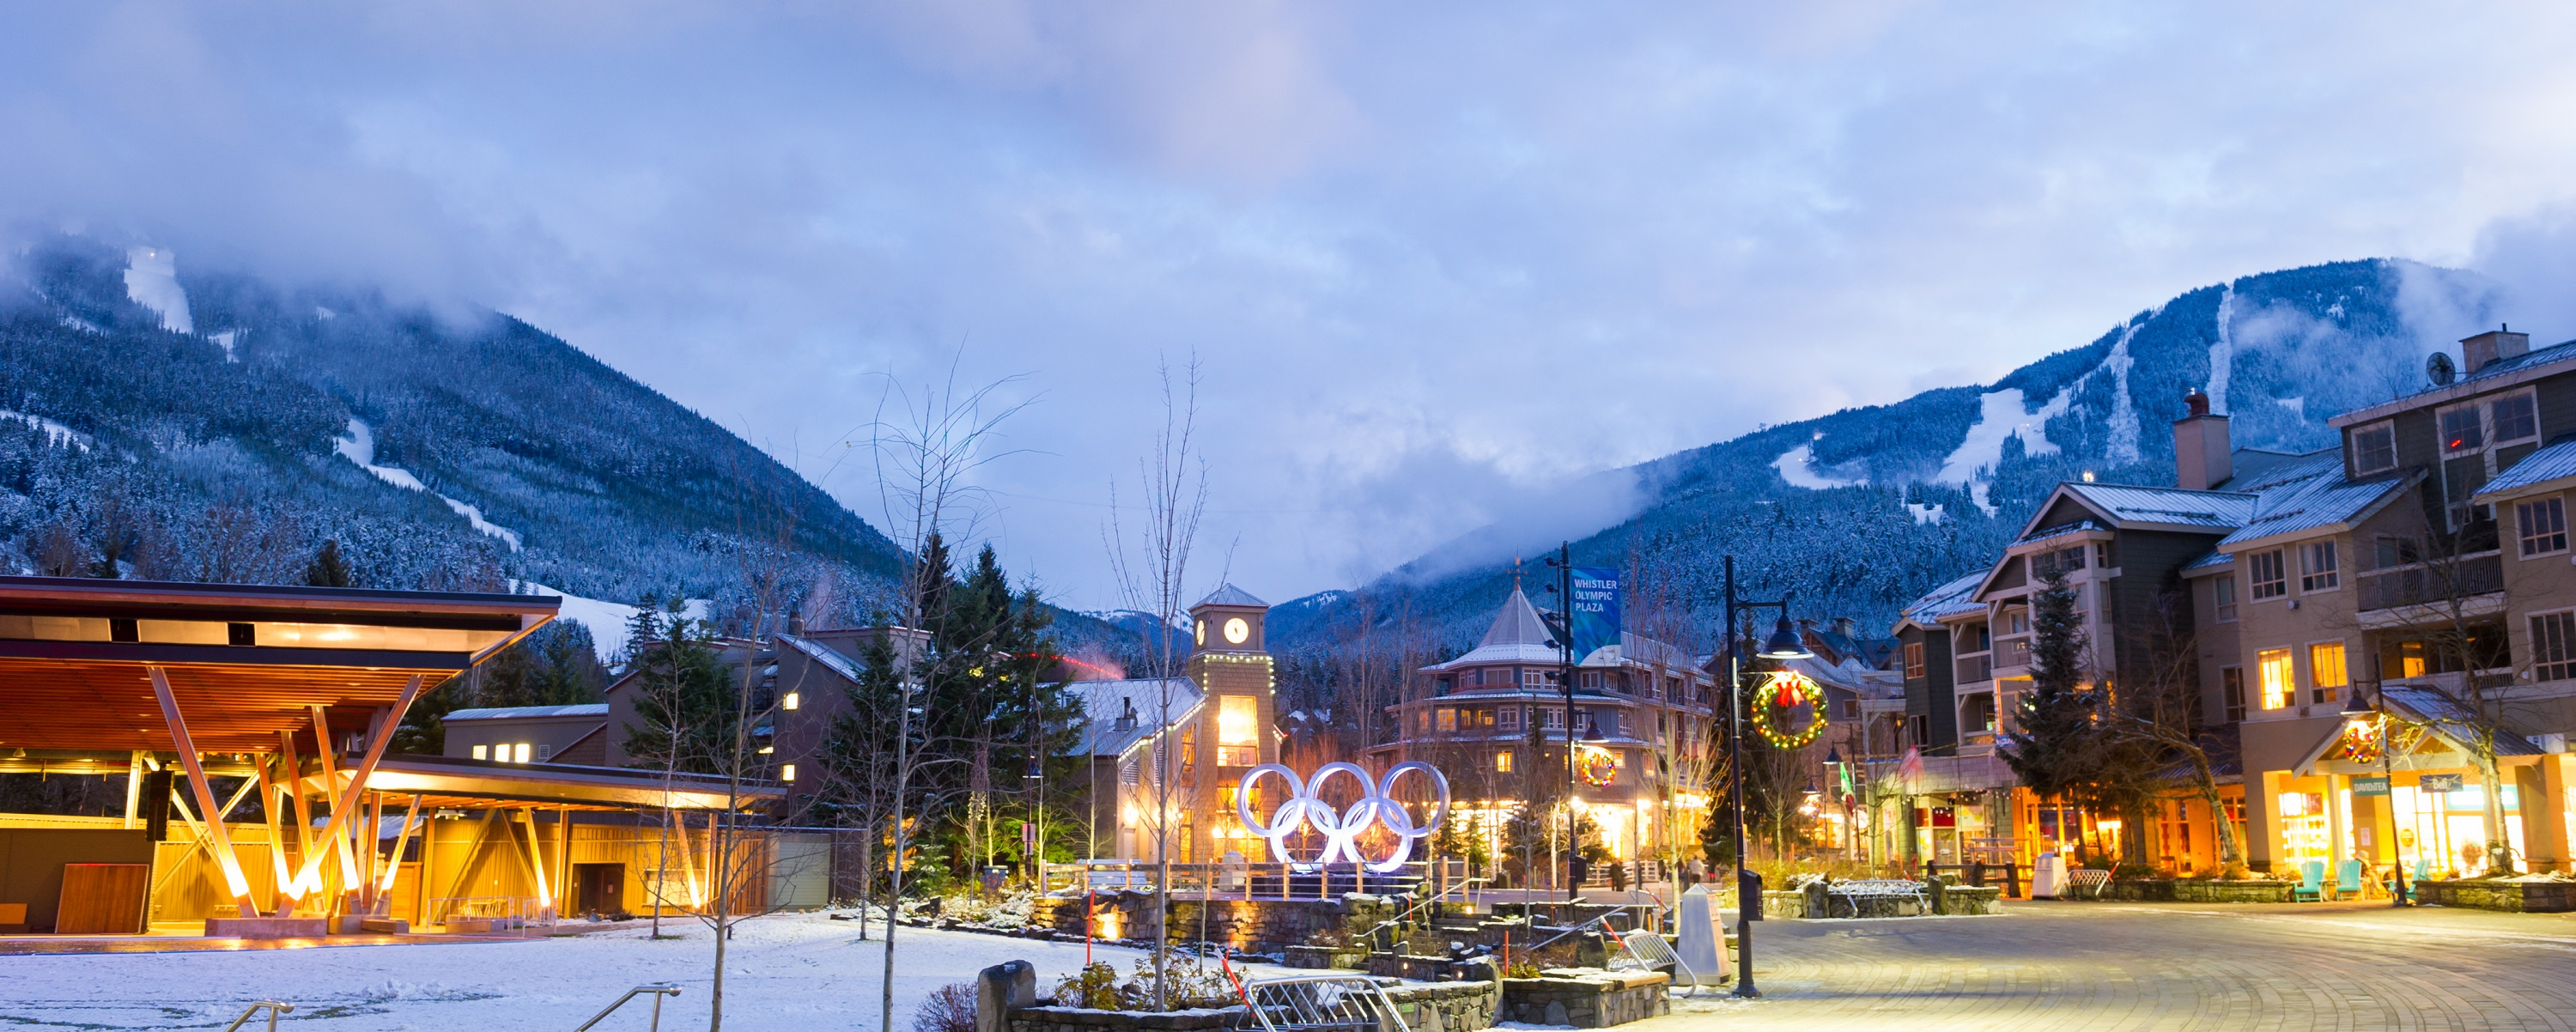 Business Listings in Whistler